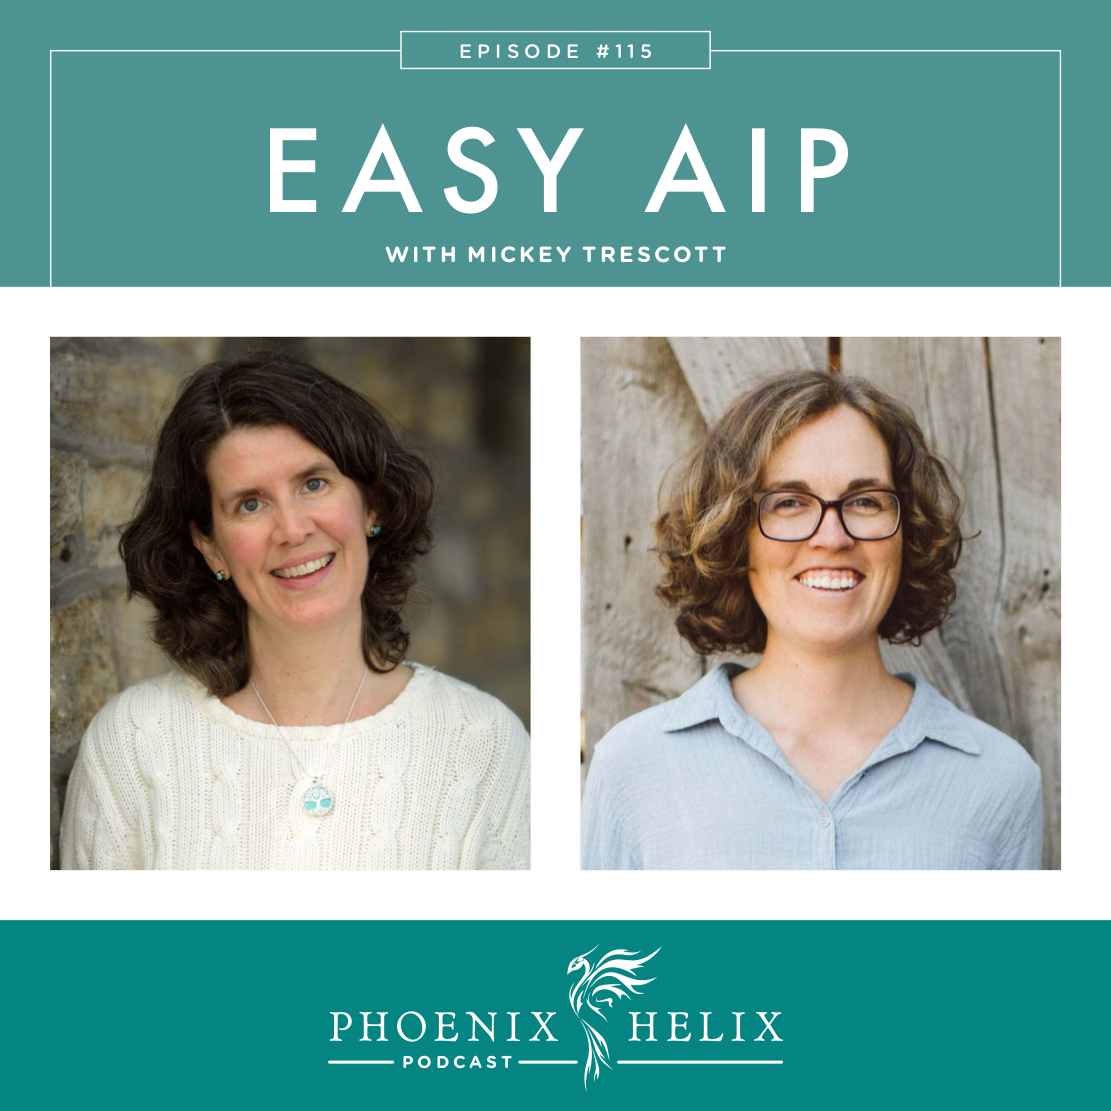 Easy AIP with Mickey Trescott | Phoenix Helix Podcast